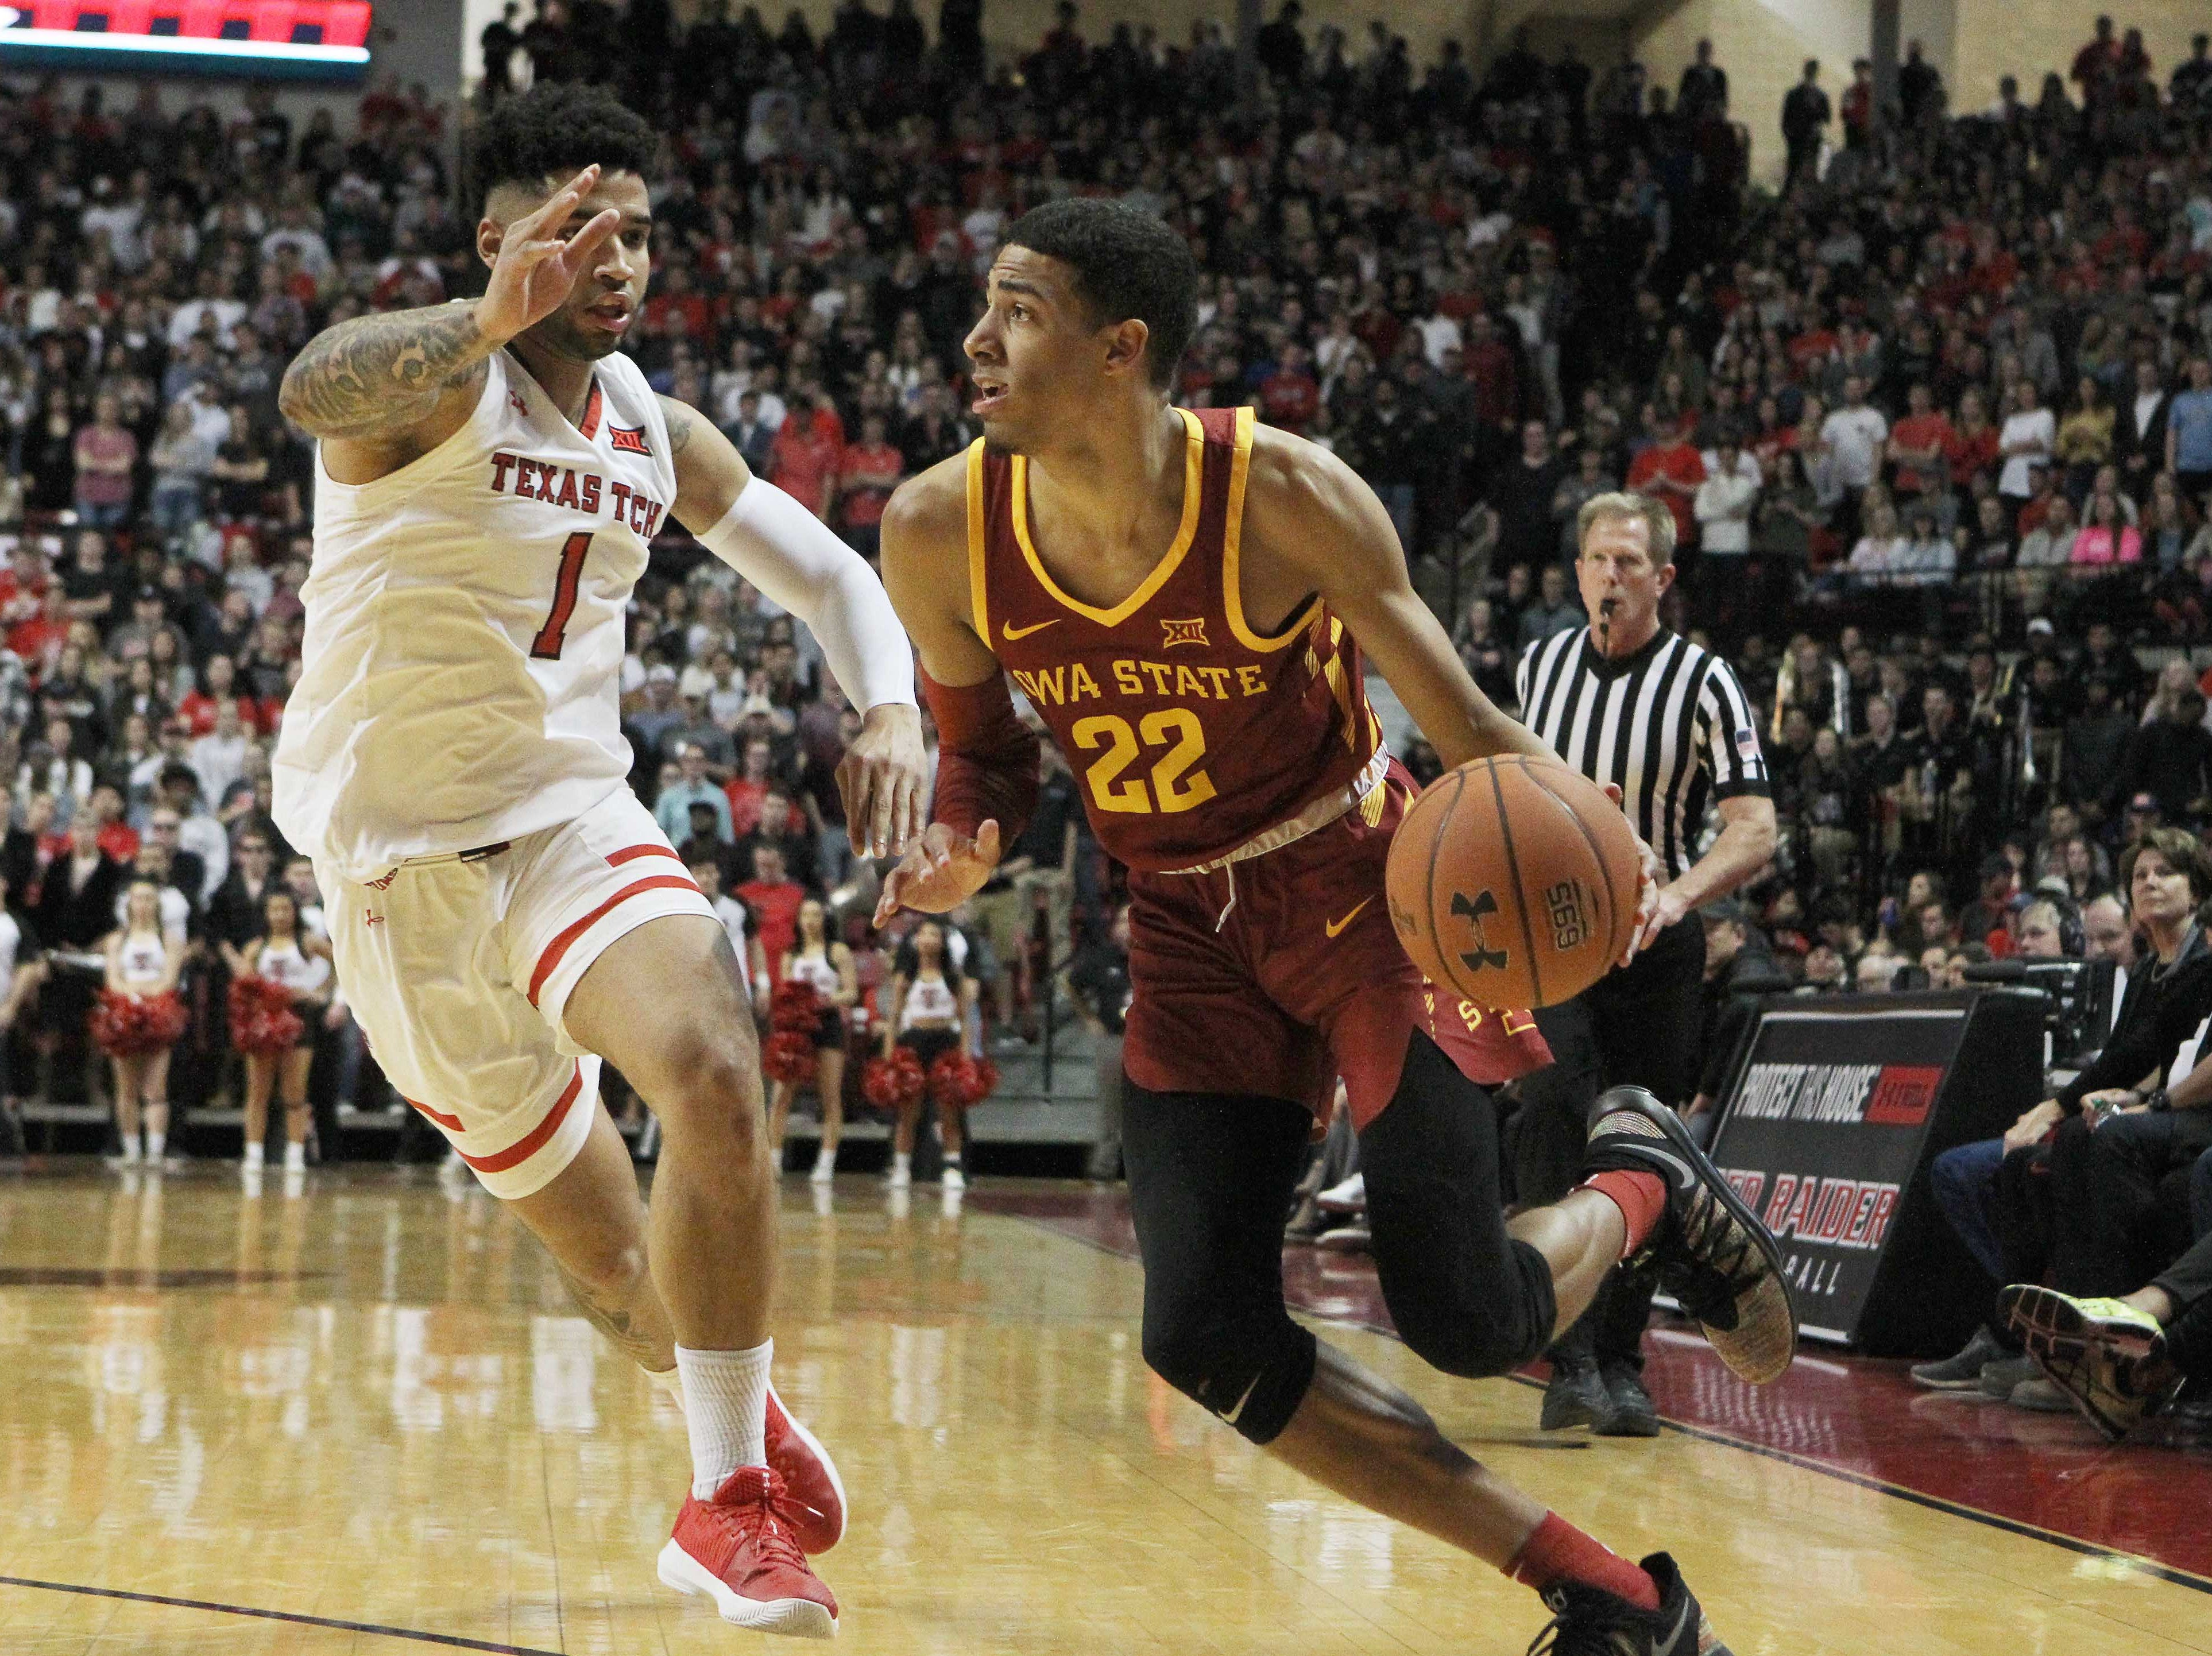 Jan 16, 2019; Lubbock, TX, USA; Iowa State Cyclones guard Tyrese Haliburton (22) dribbles the ball as Texas Tech Red Raiders guard Brandone Francis (1) defends in the first half at United Supermarkets Arena.